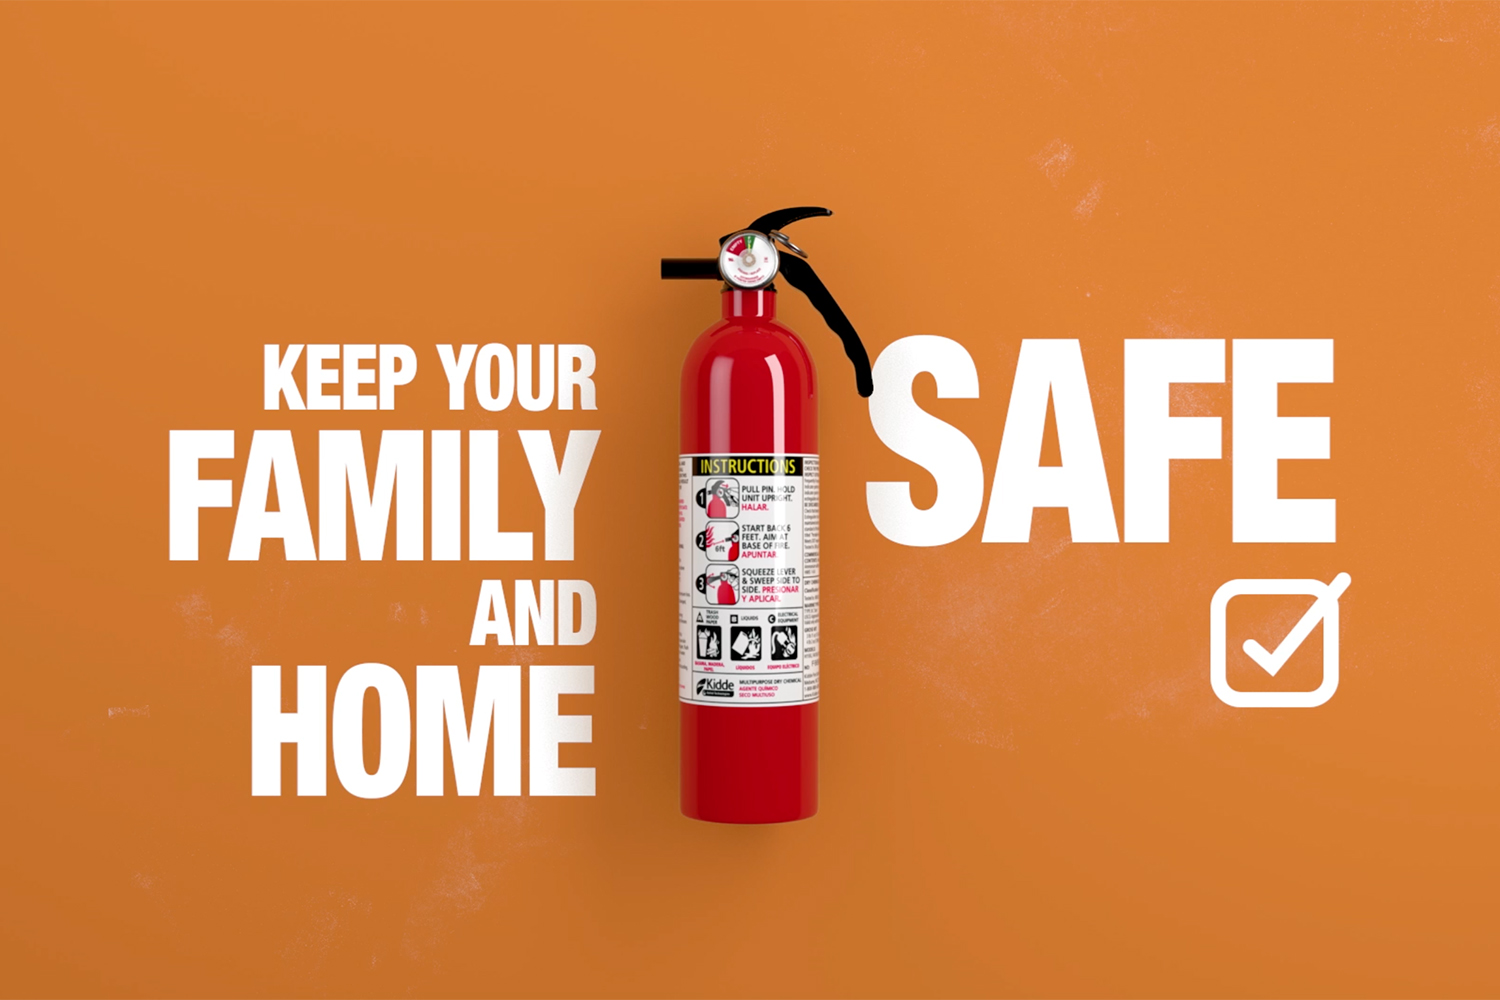 22squared: Home Depot's safety campaign